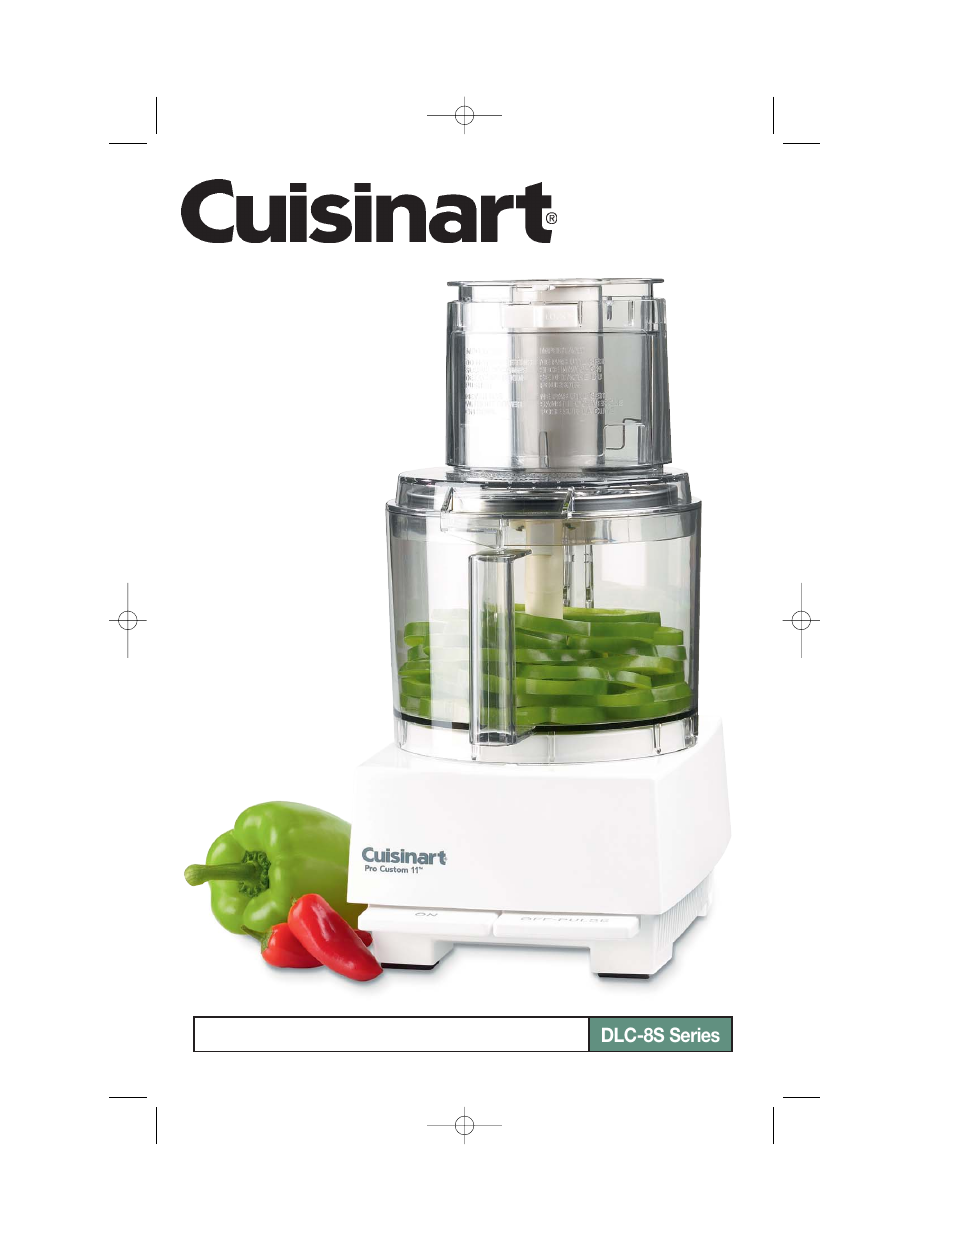 Cuisinart pro custom 11 dlc 8s user manual 49 pages forumfinder Image collections